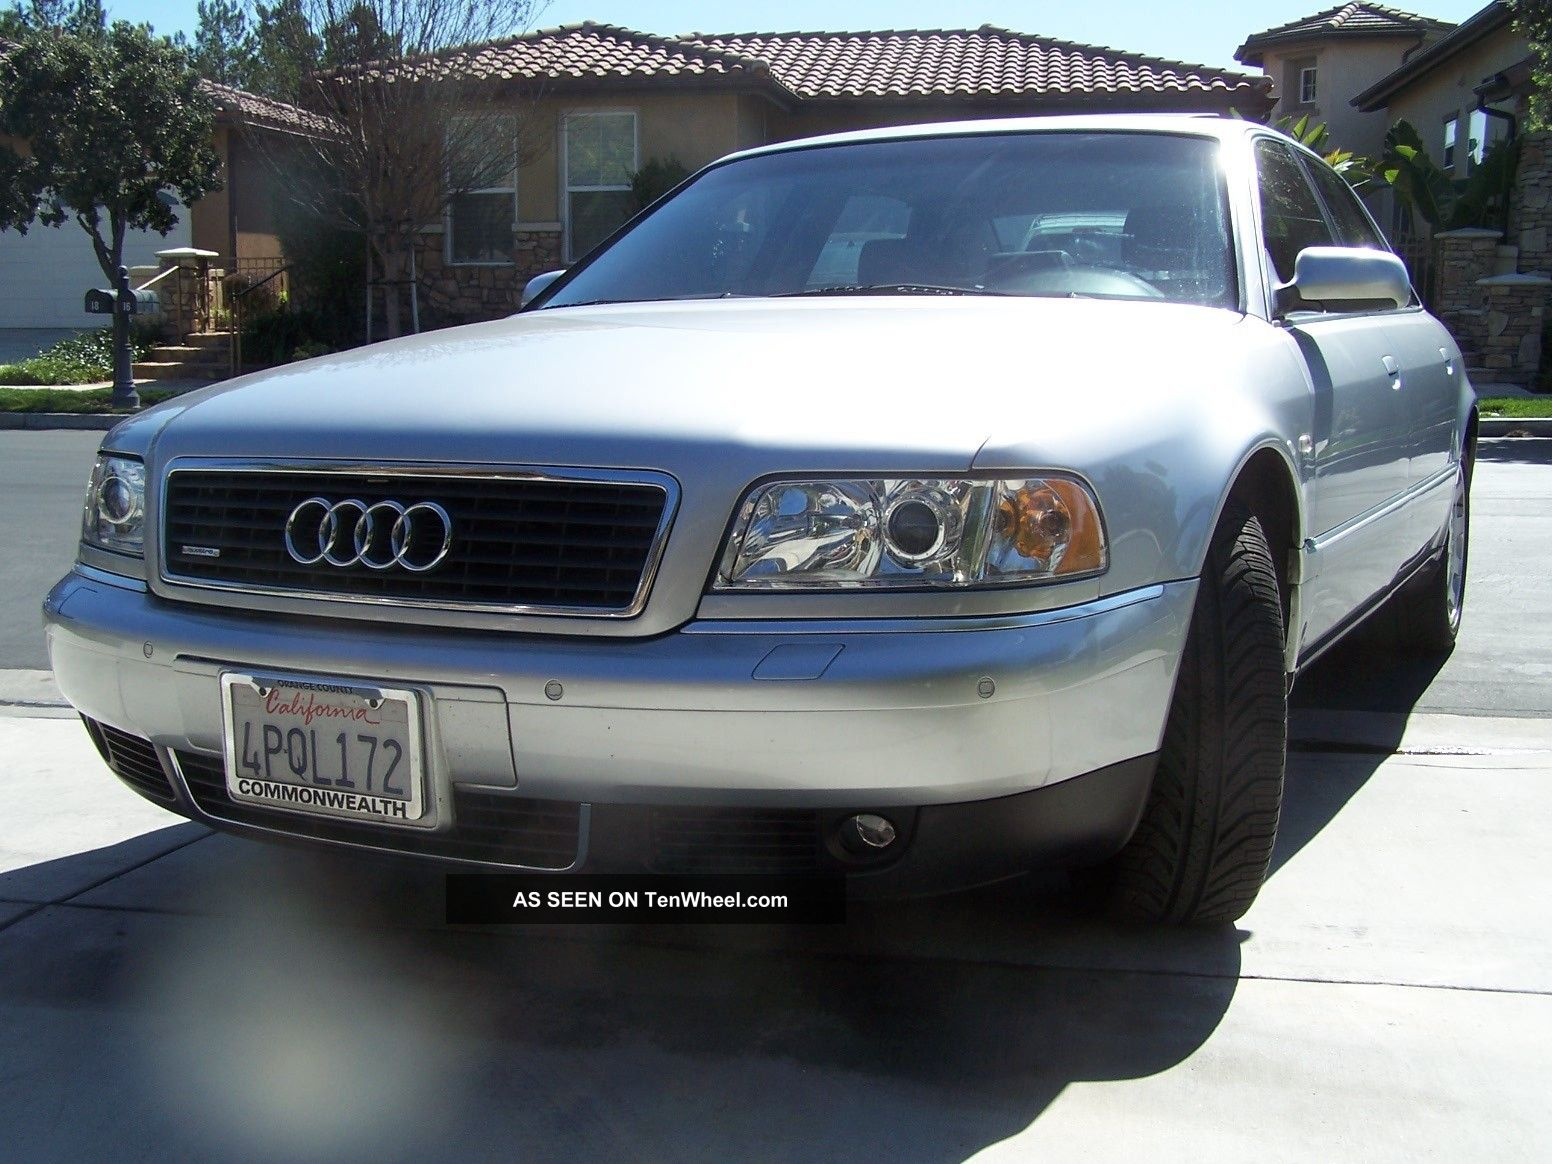 Audi Al All Records Everything Good Mustsell Cheap - Commonwealth audi